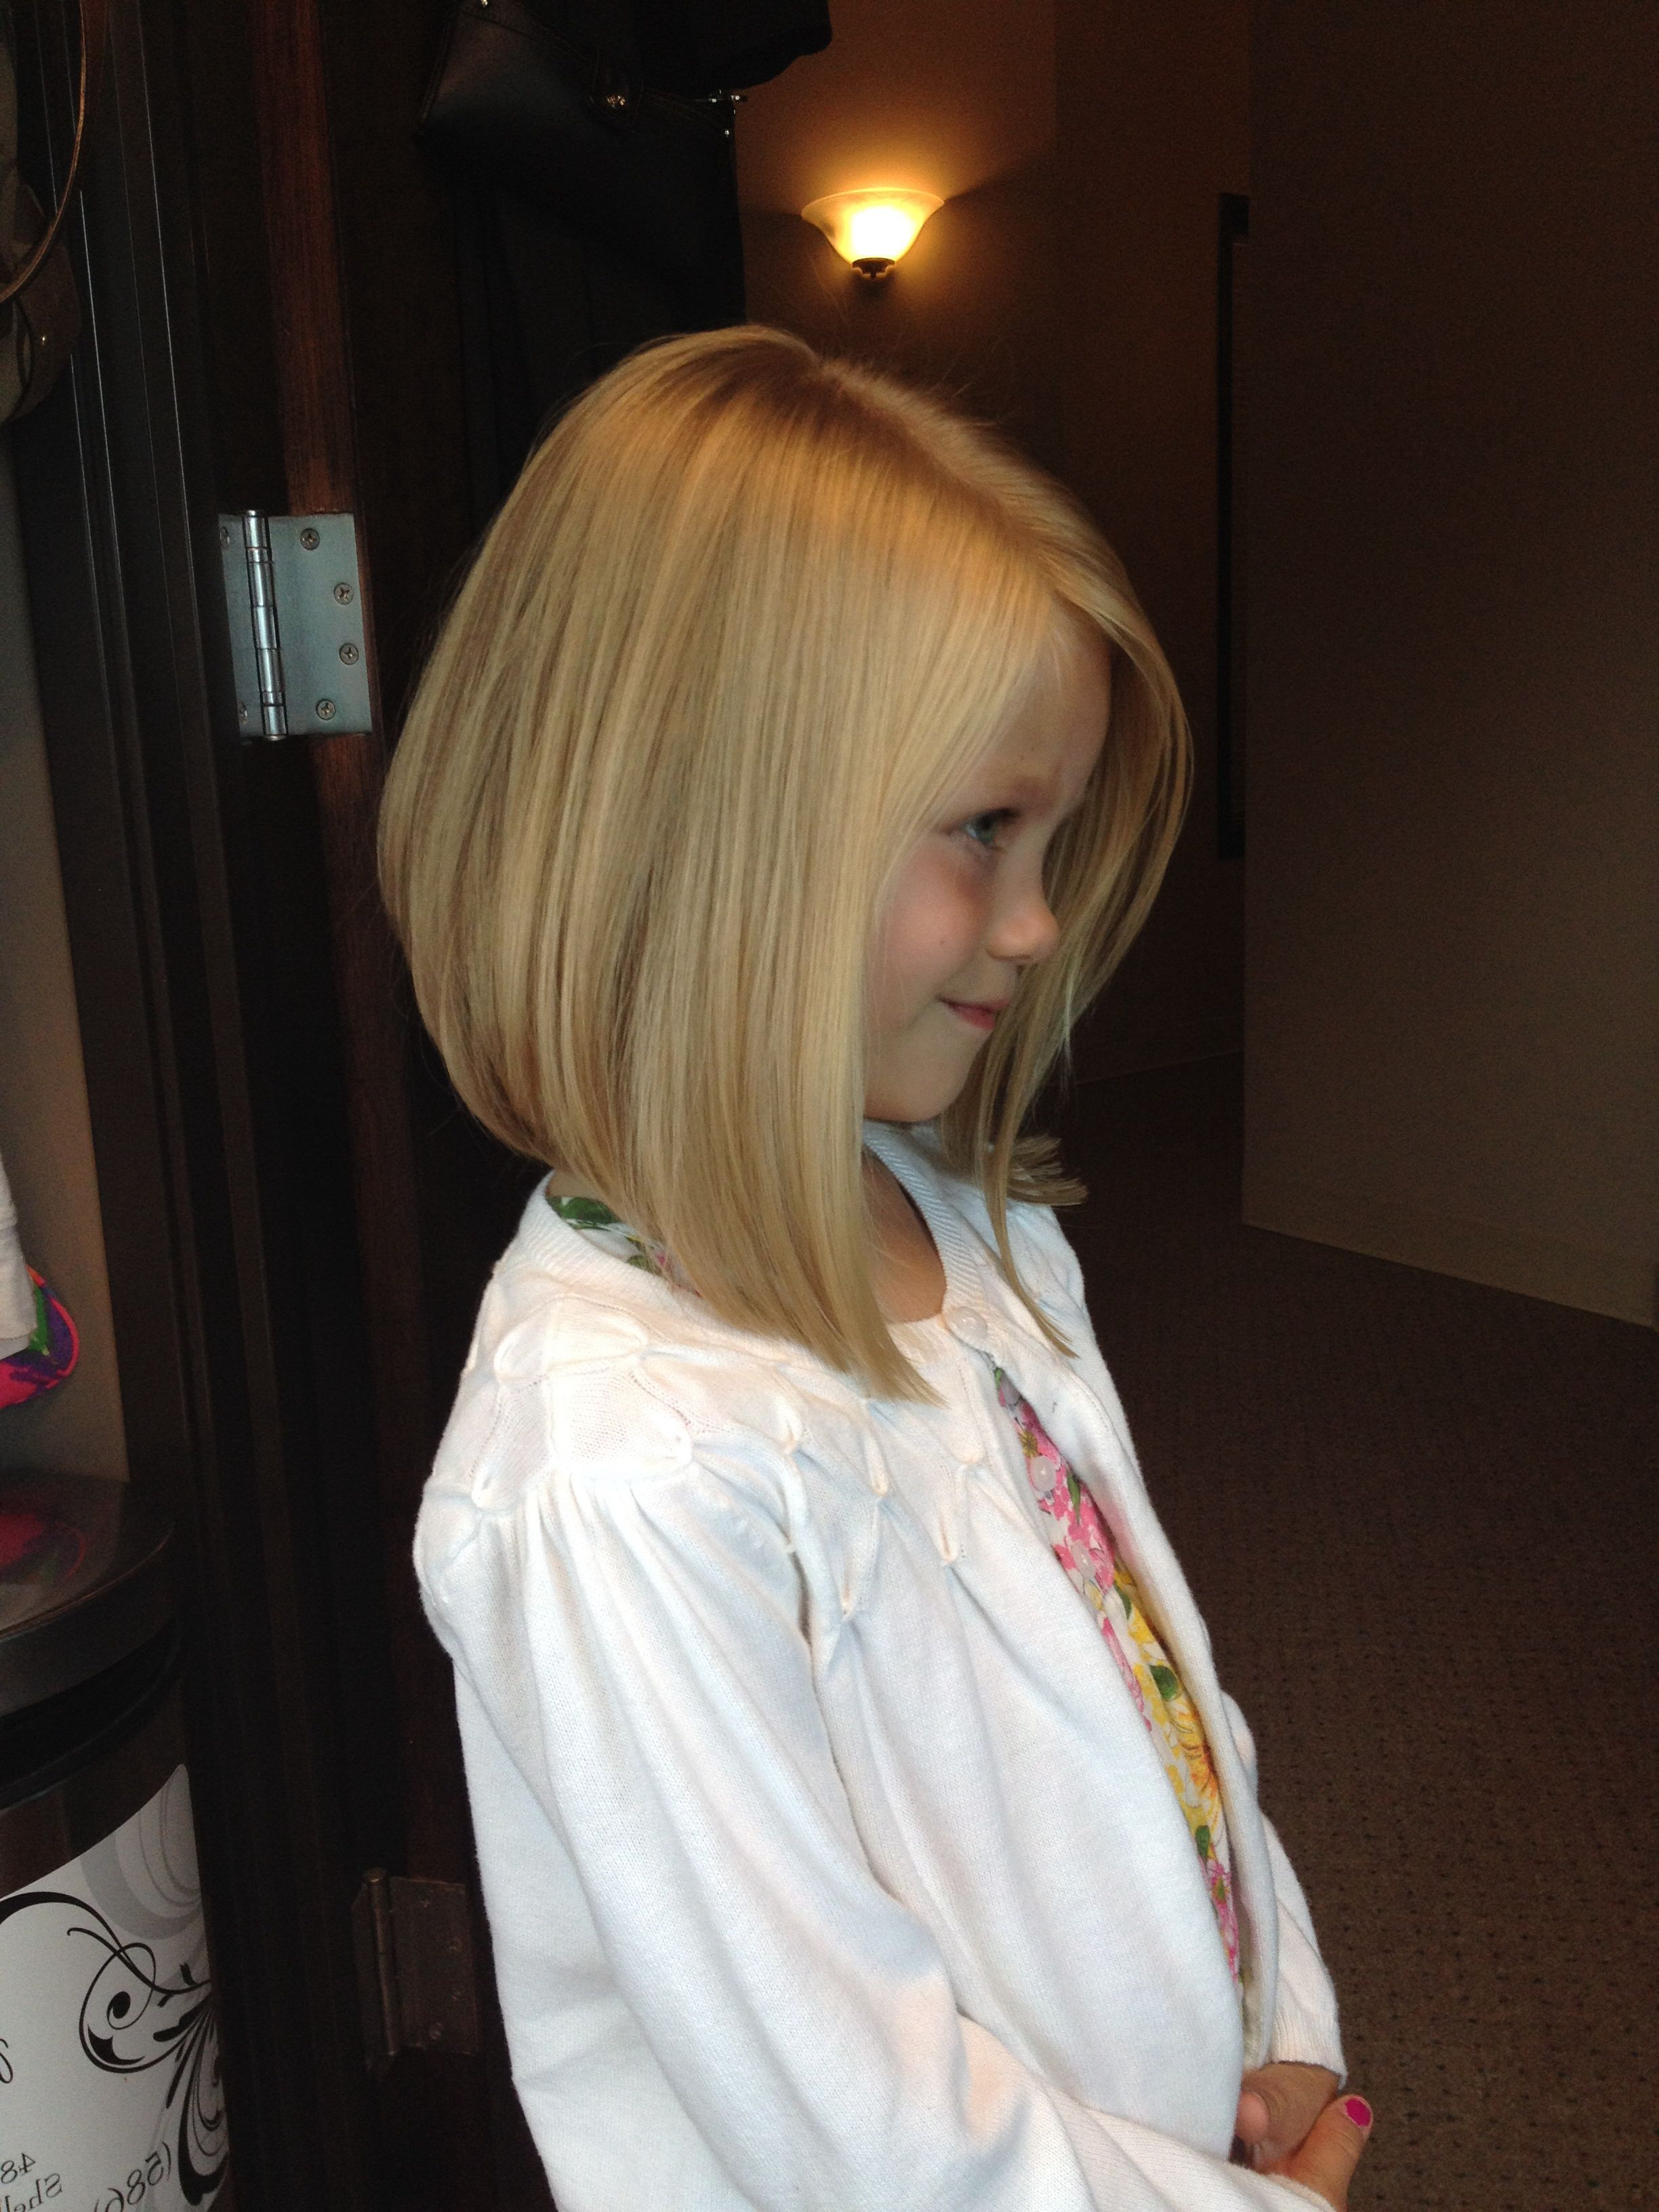 25 Belles Coupes Pour Petites Filles | Hairstyles | Pinterest | Girl Regarding Kids Short Haircuts With Bangs (View 13 of 25)